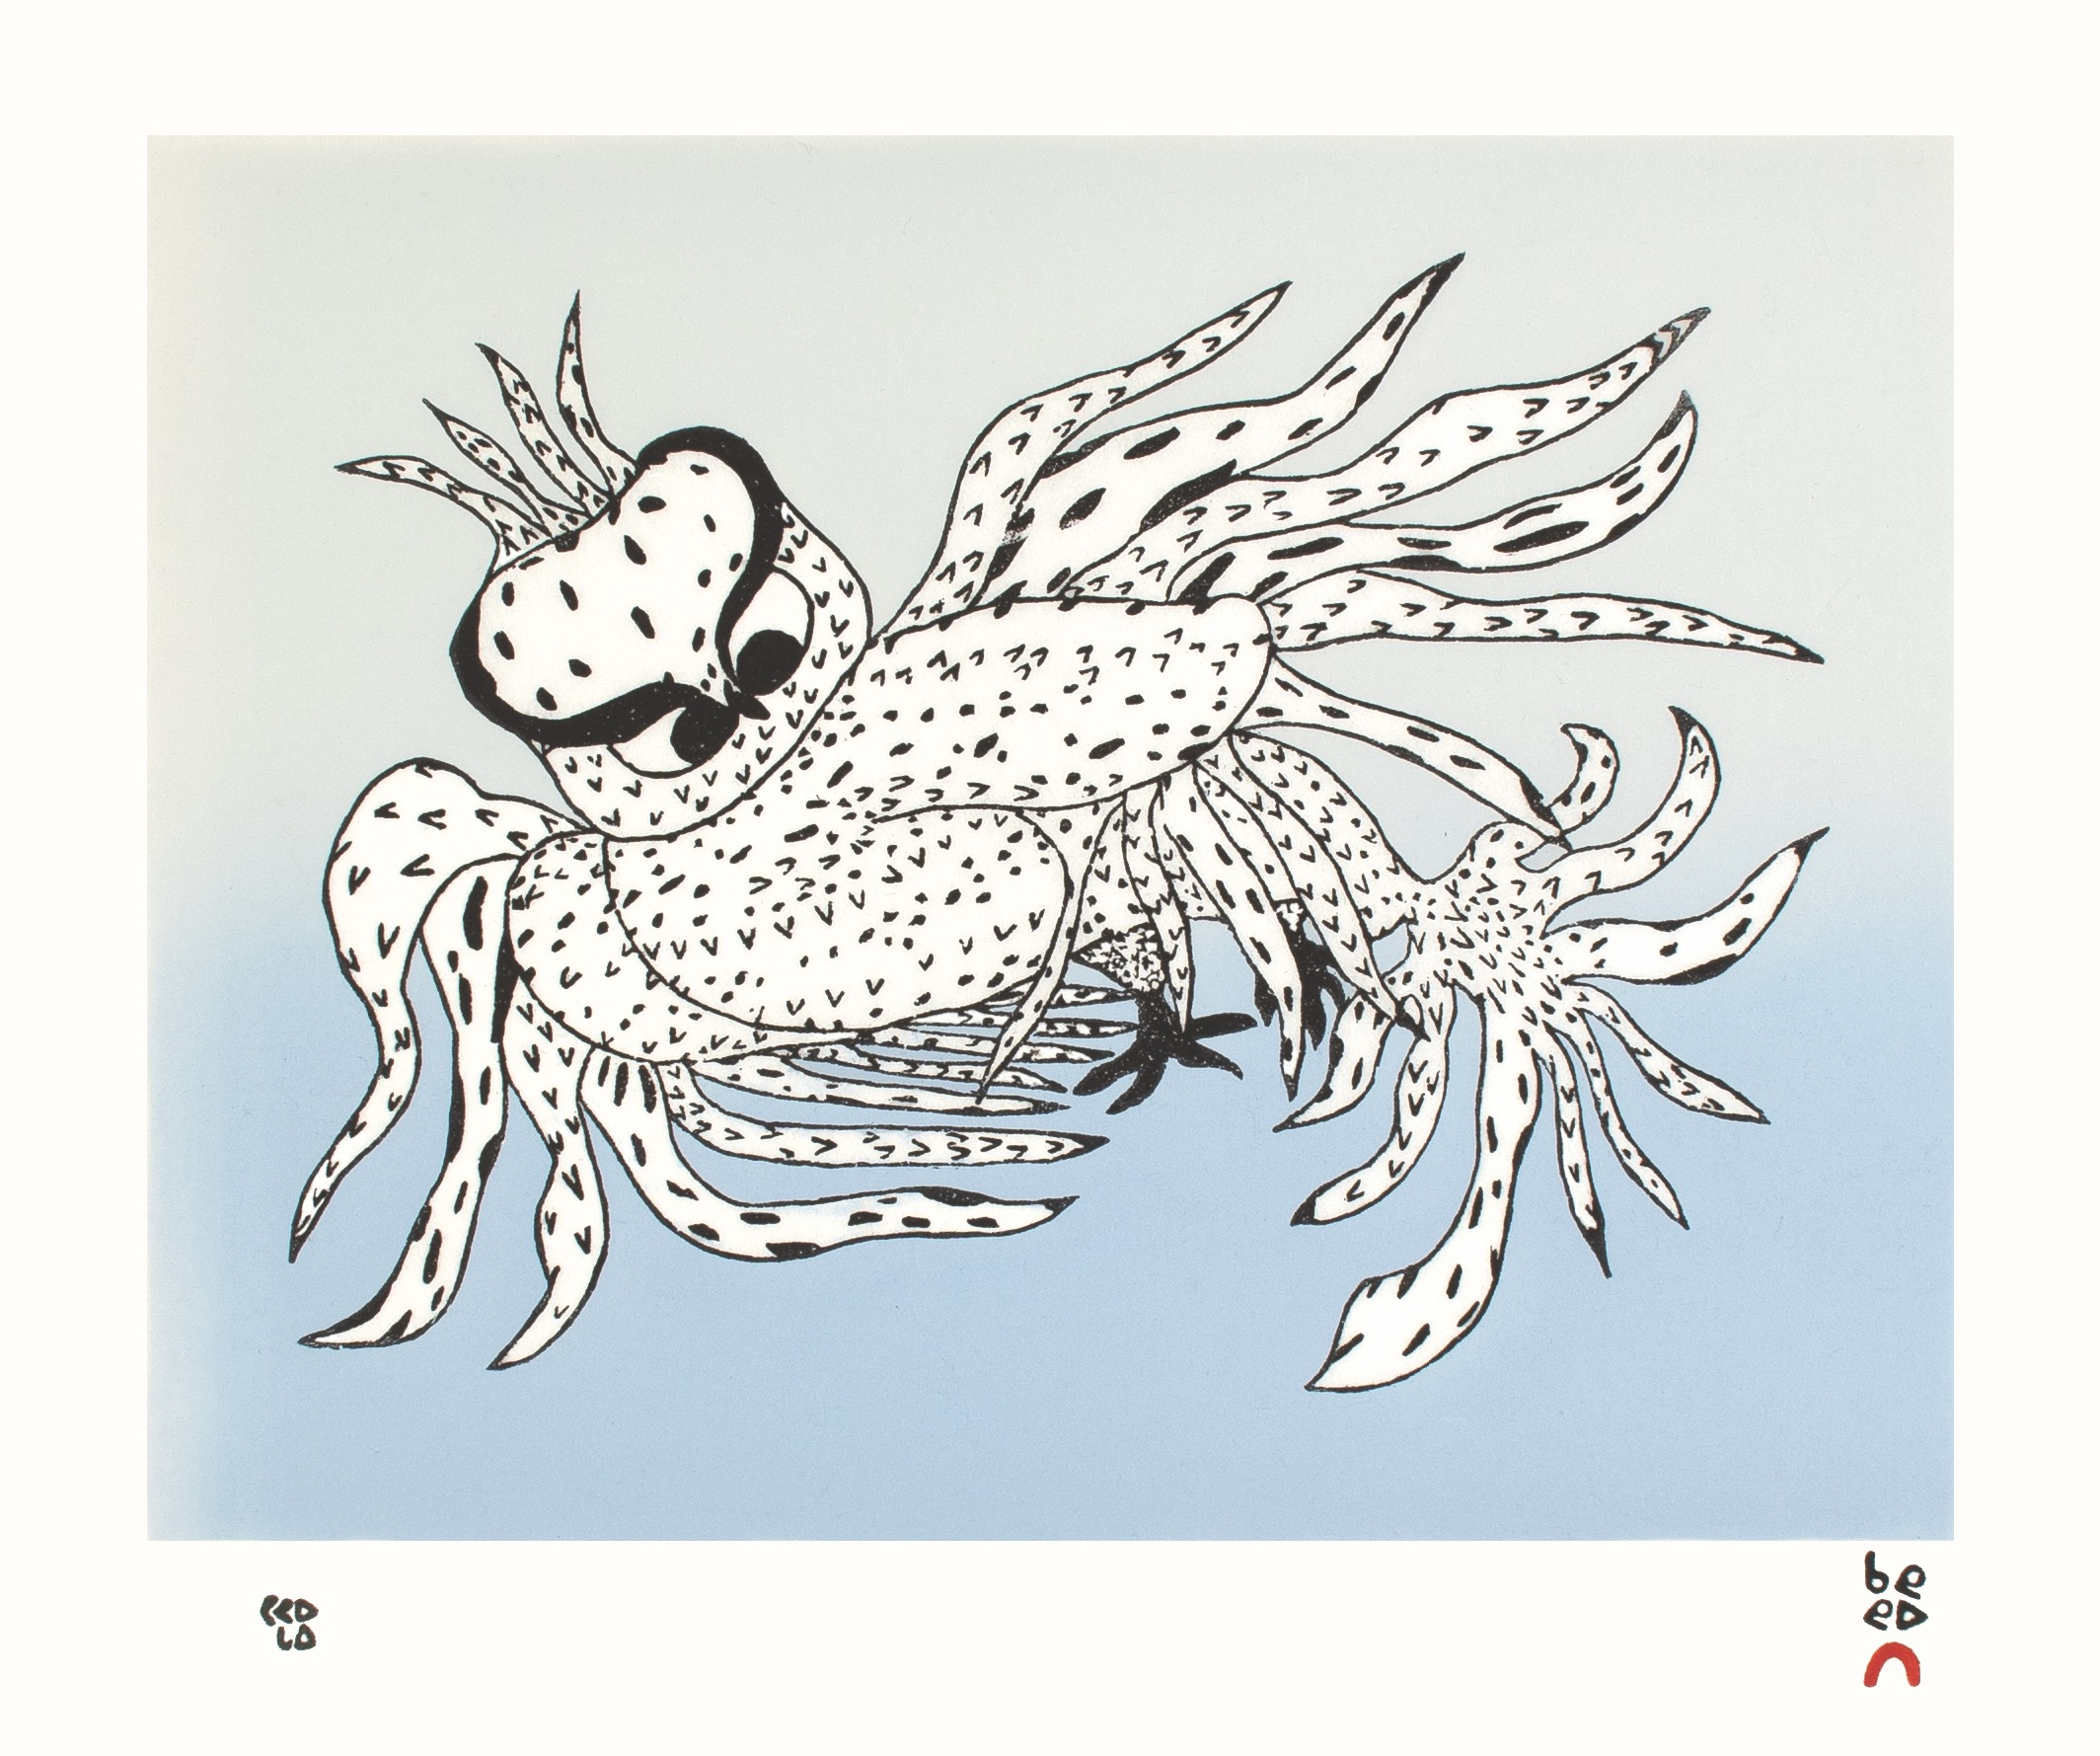 Besotted Owl by Ooloosie Saila - 2021 Cape Dorset Annual Print Collection